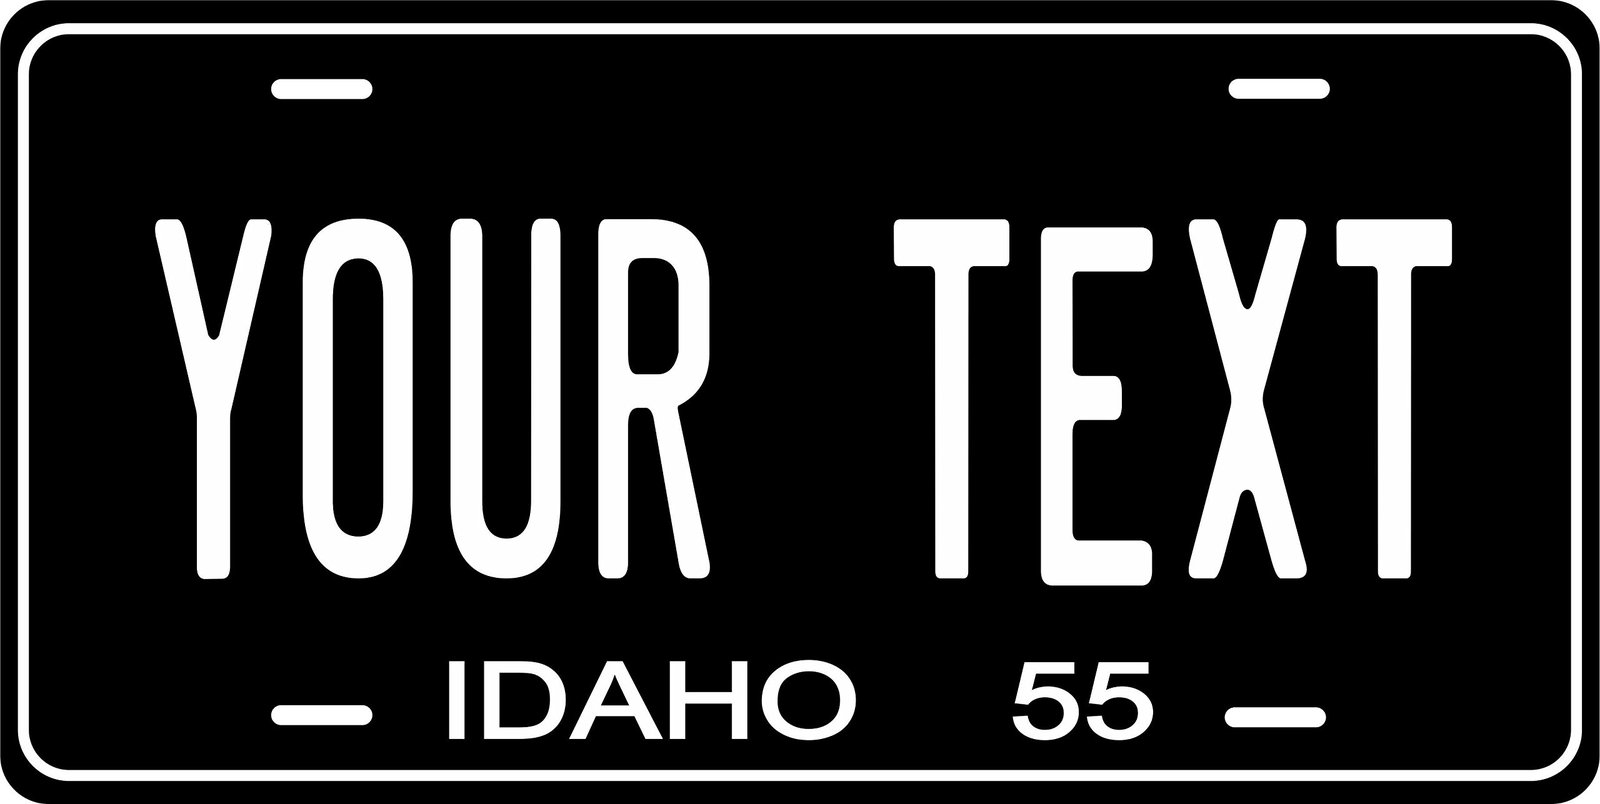 Idaho 1955 Personalized Tag Vehicle Car Auto License Plate